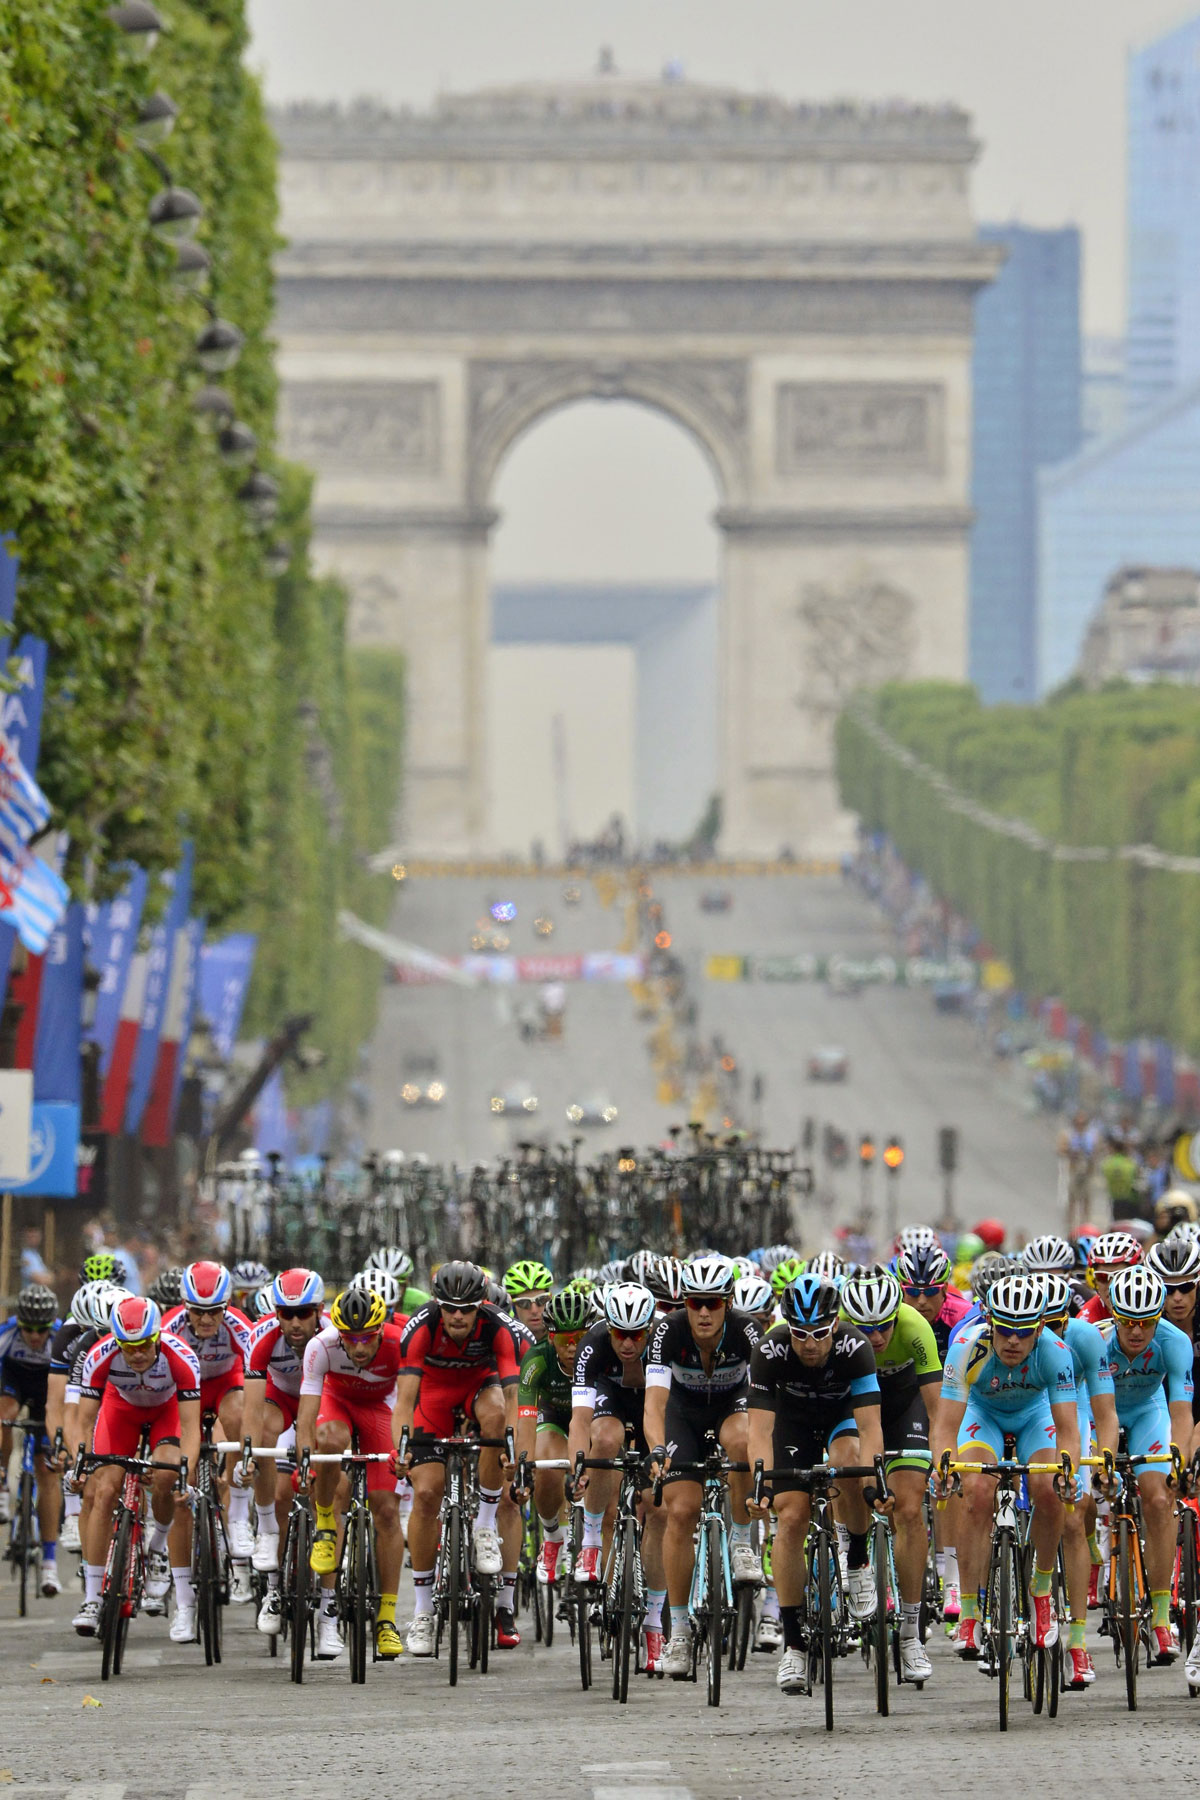 2014 Tour de France: Graham Watson Stage 21 Photo Gallery